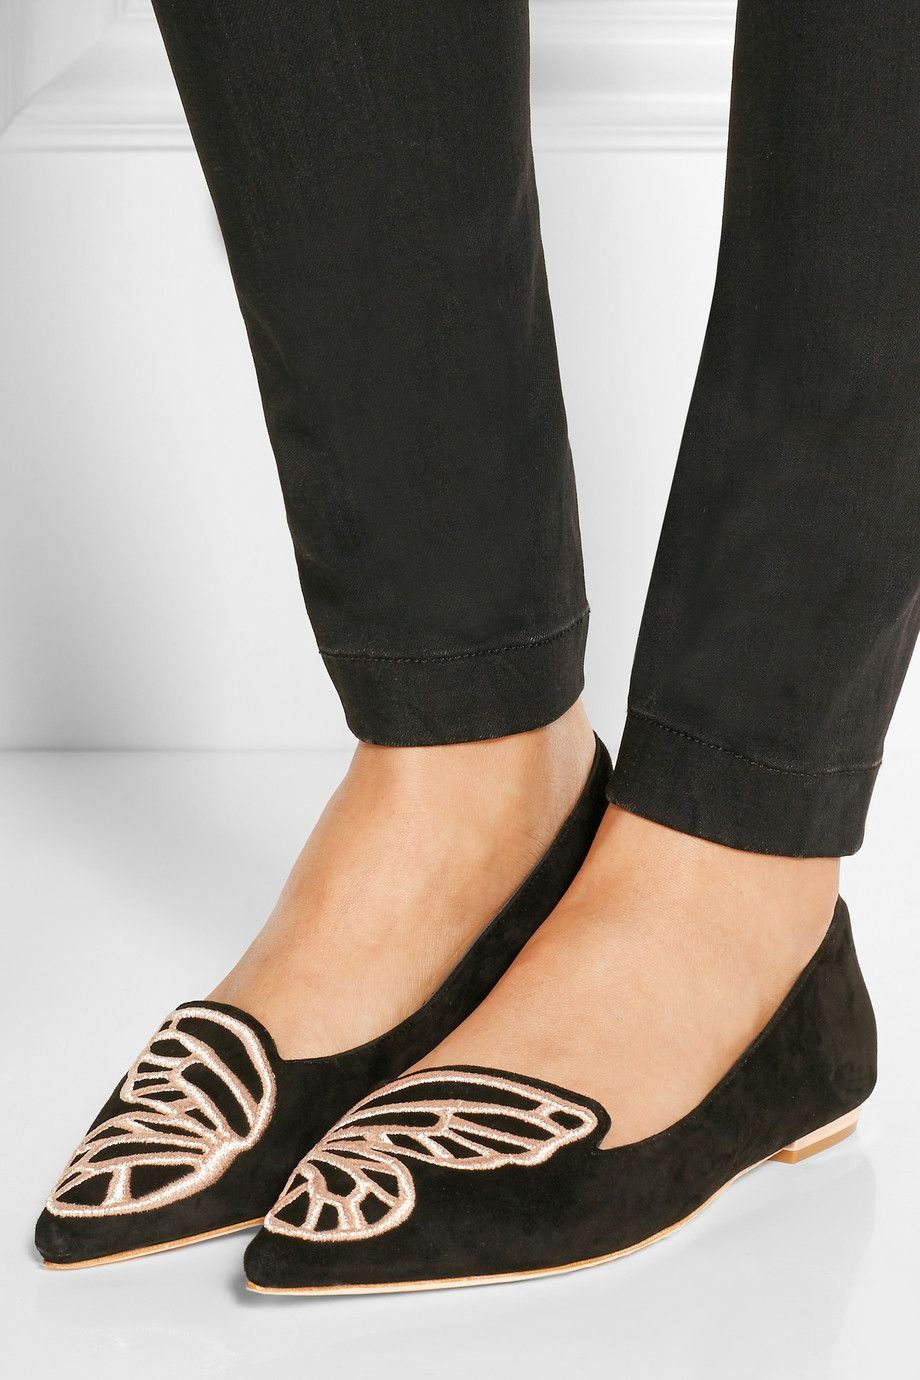 black Bibi Butterfly embroidered suede slippers Sophia Webster XIpNXJBuhY